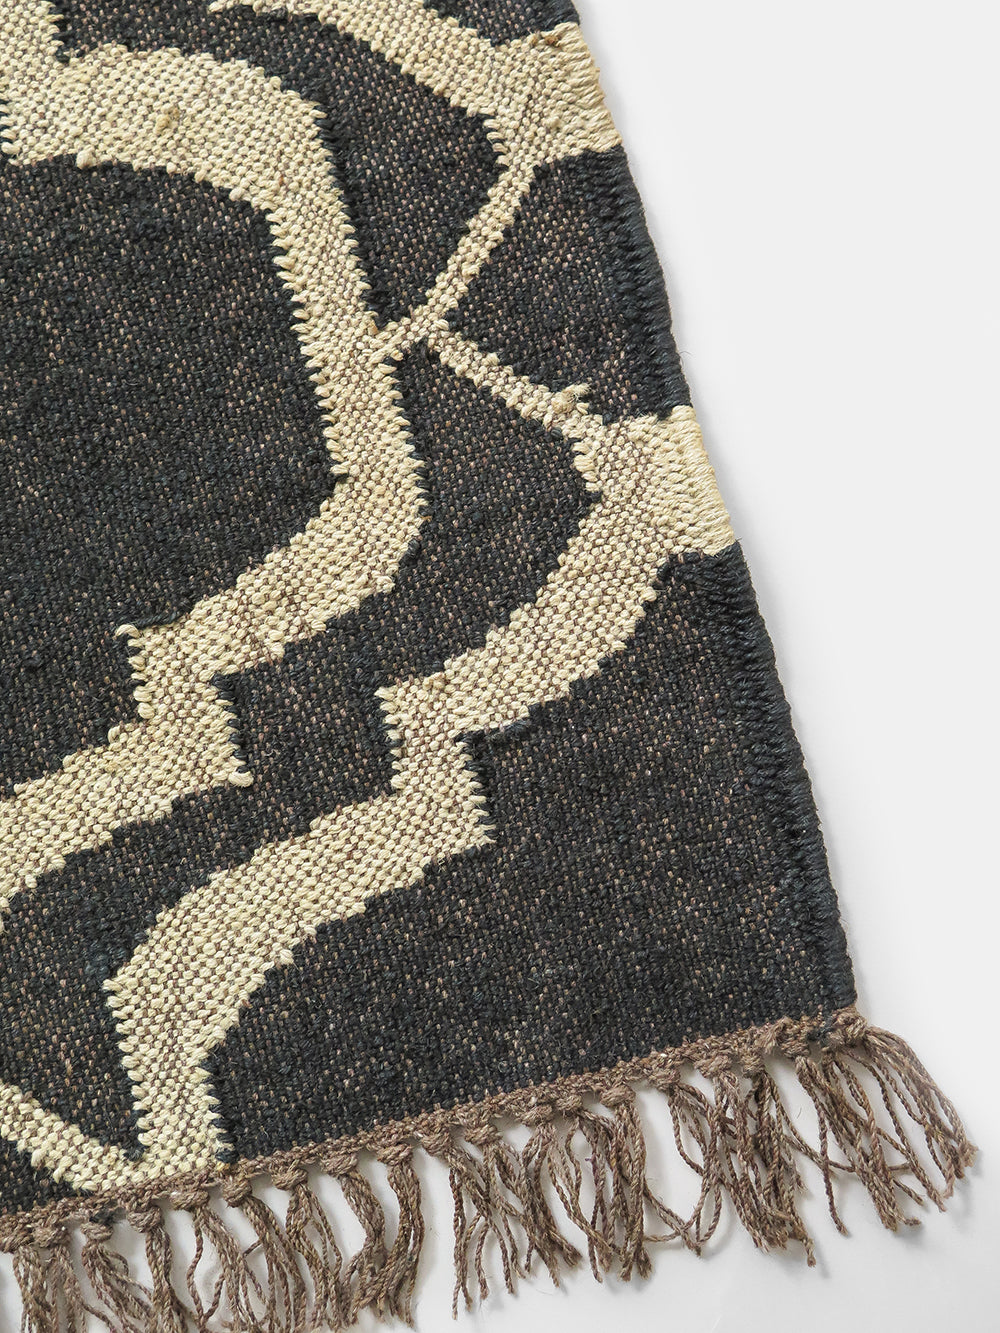 key wool + jute rug in black